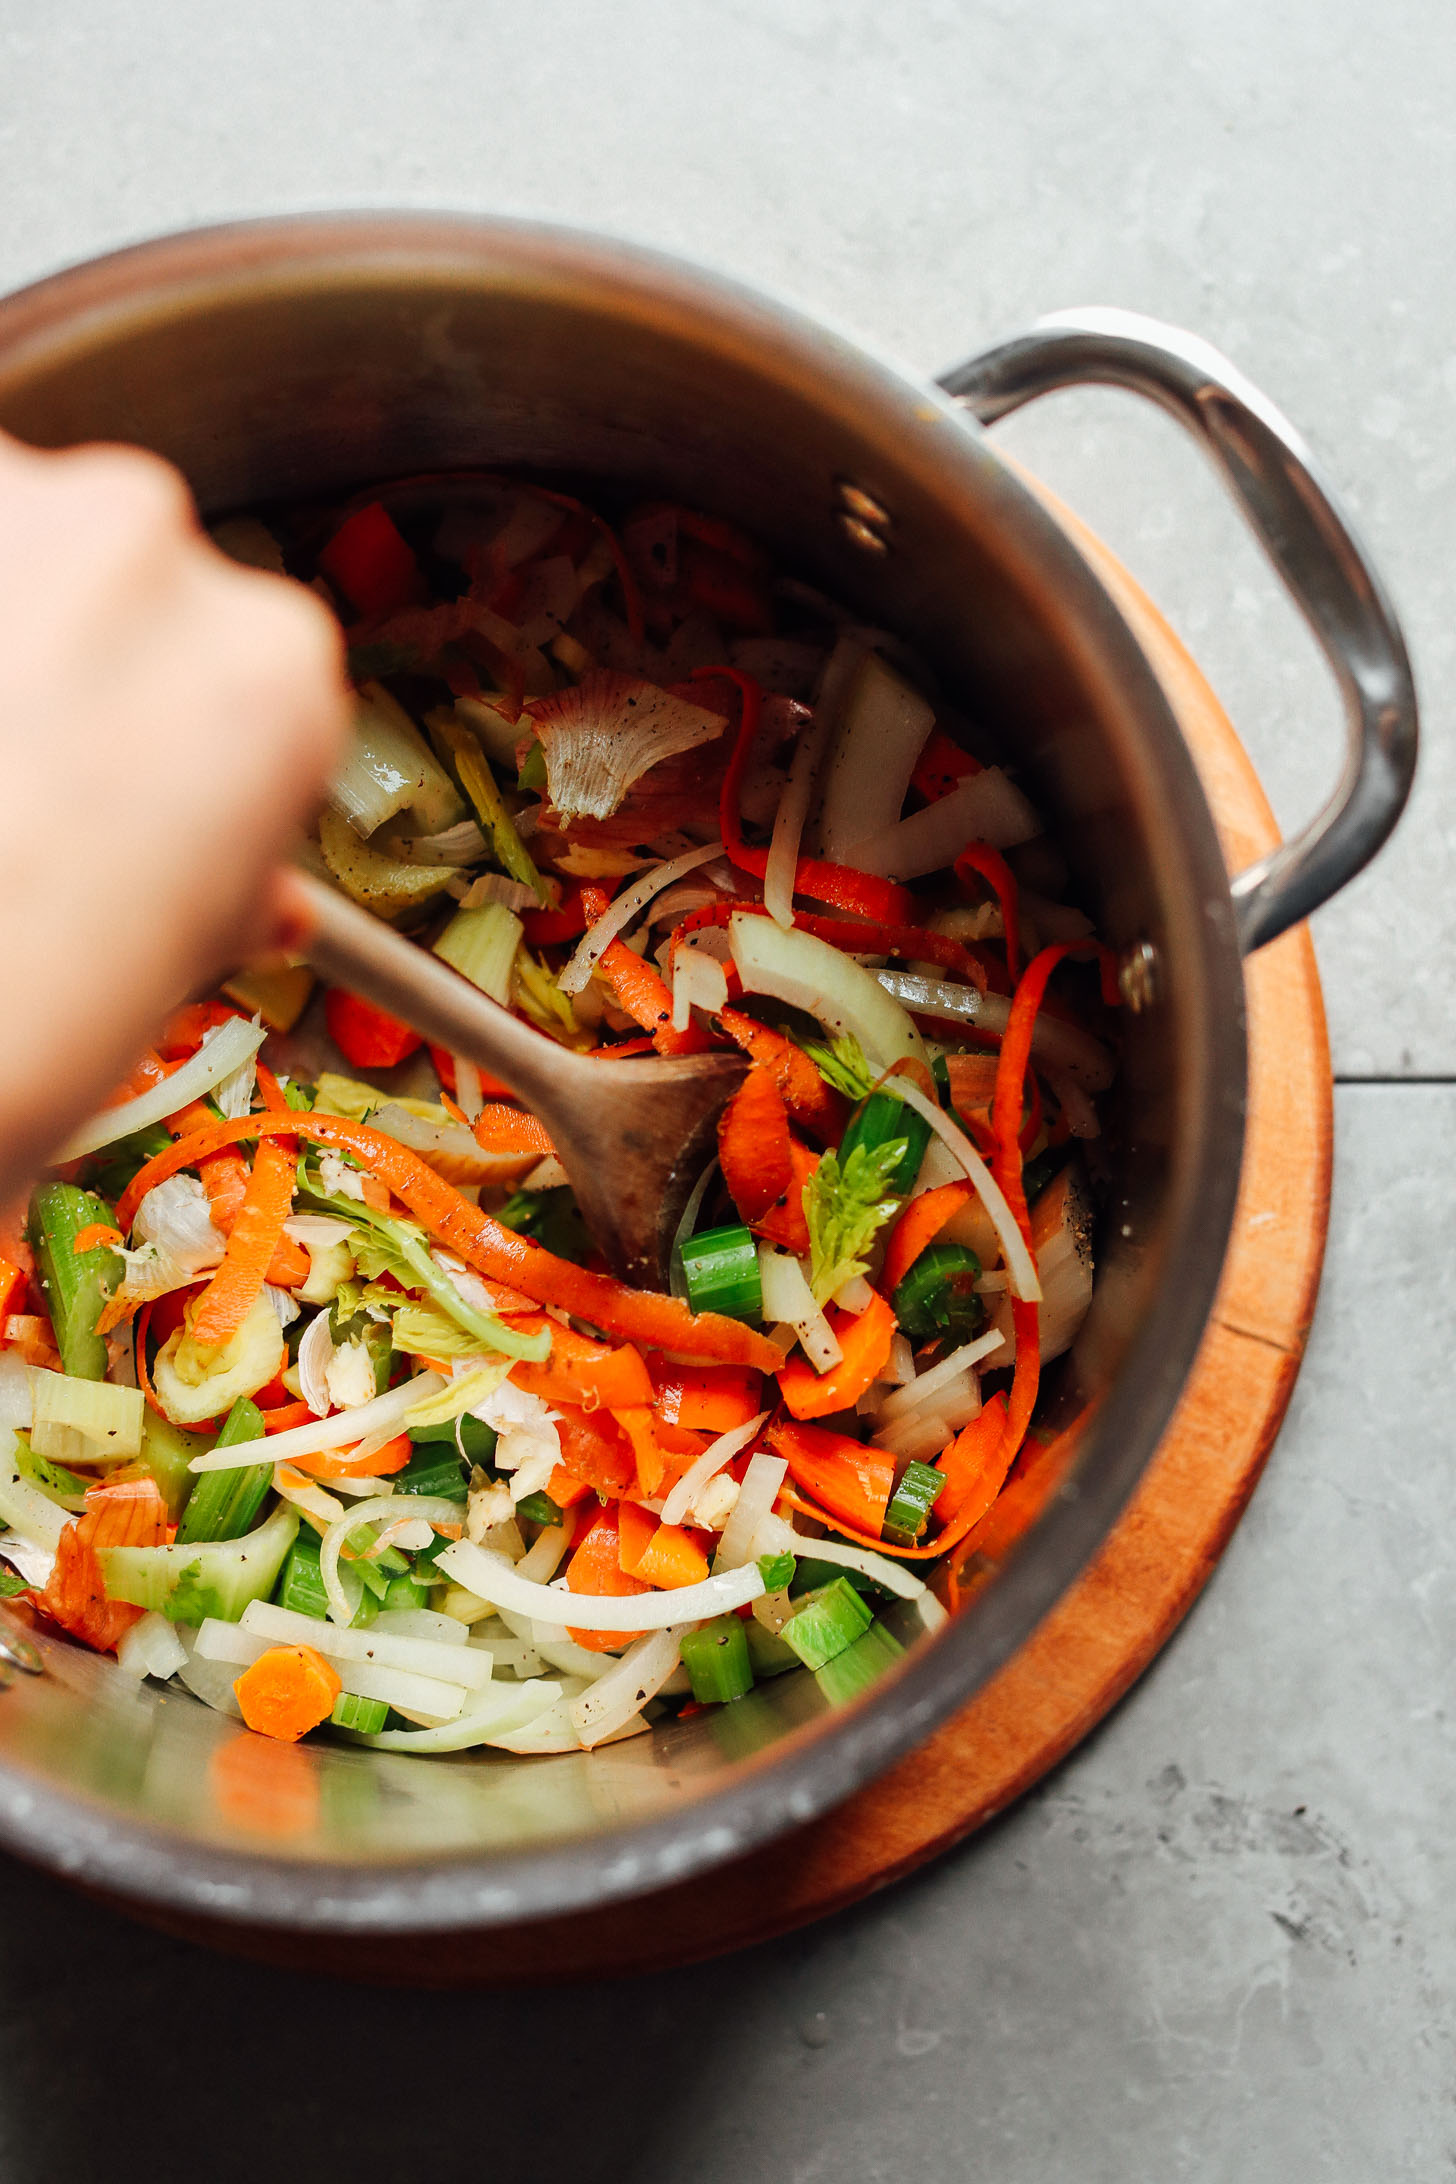 Stirring a big pot with vegetables for making the BEST homemade vegetable broth